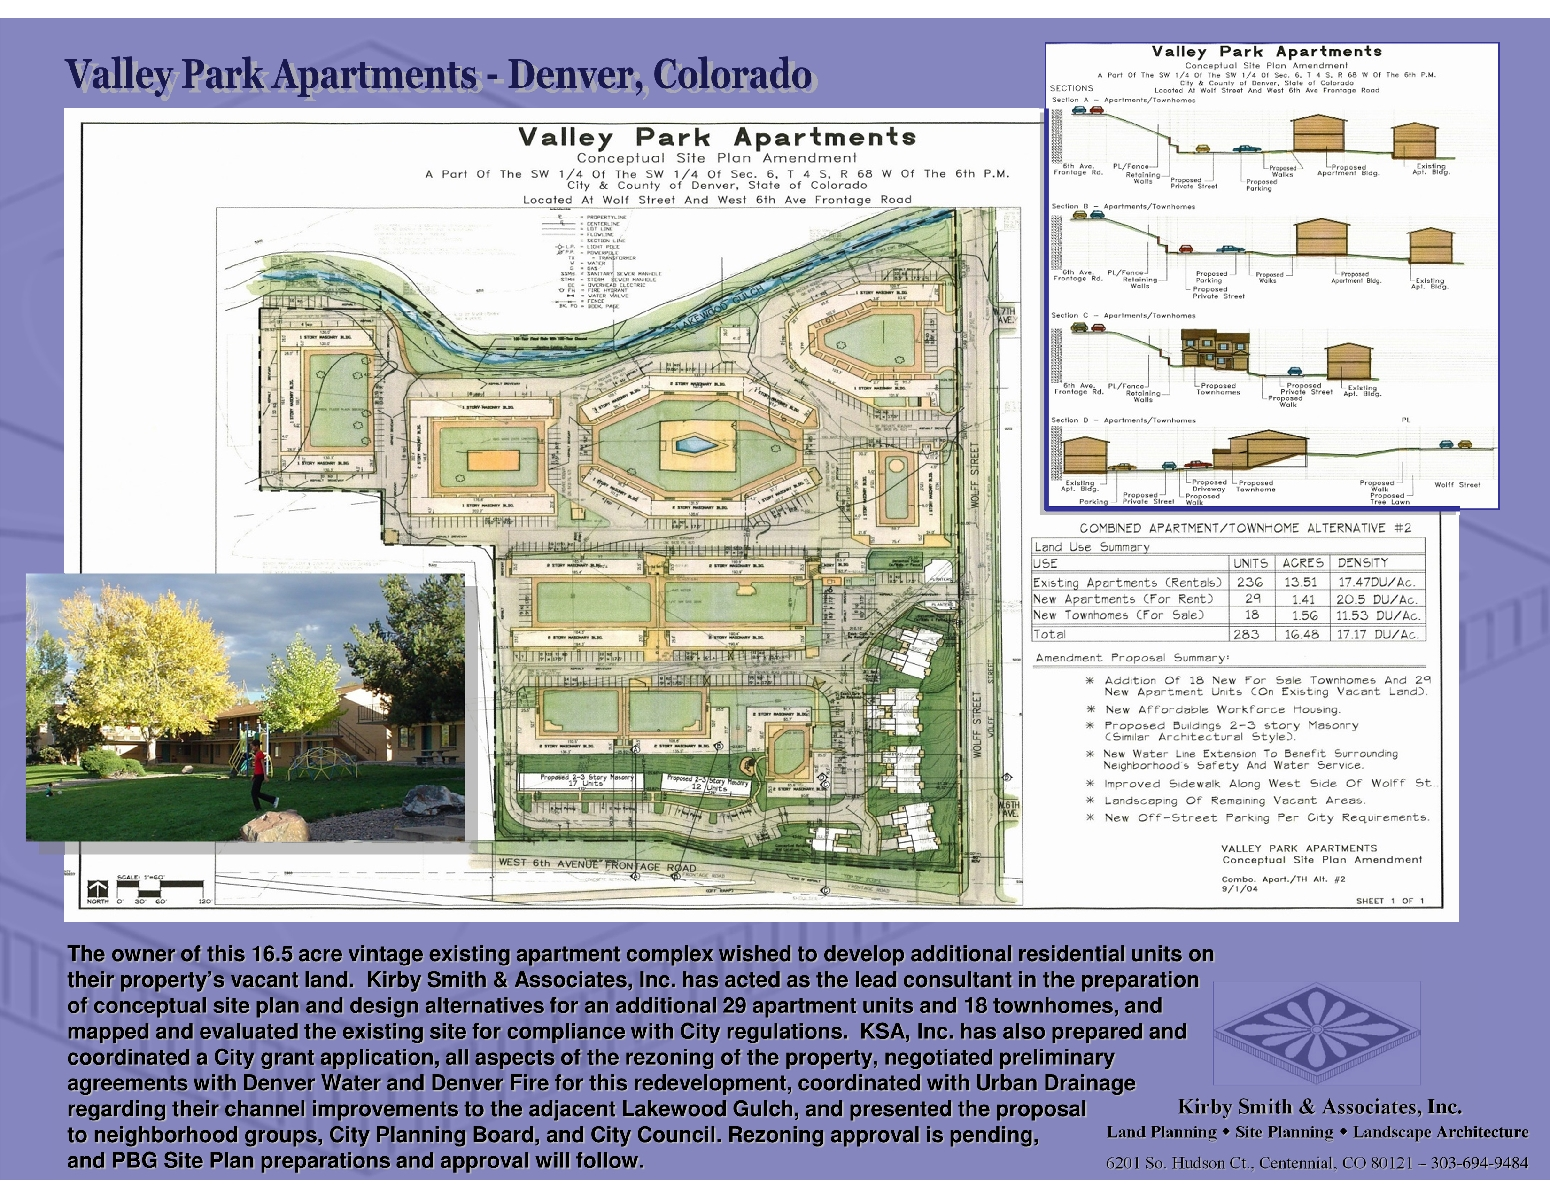 The owner of this 16.5 acre vintage existing apartment complex wished to develop additional residential units on their property's vacant land.  Kirby Smith & Associates, Inc. has acted as the lead consultant in the preparation of conceptual site plan and design alternatives for an additional 29 apartment units and 18 townhomes, and mapped and evaluated the existing site for compliance with City regulations.  KSA, Inc. has also prepared and coordinated a City grant application, all aspects of the rezoning of the property, negotiated preliminary agreements with Denver Water and Denver Fire for this redevelopment, coordinated with Urban Drainage regarding their channel improvements to the adjacent Lakewood Gulch, and presented the proposal to neighborhood groups, City Planning Board, and City Council. Rezoning approval is pending,        and PBG Site Plan preparations and approval will follow.